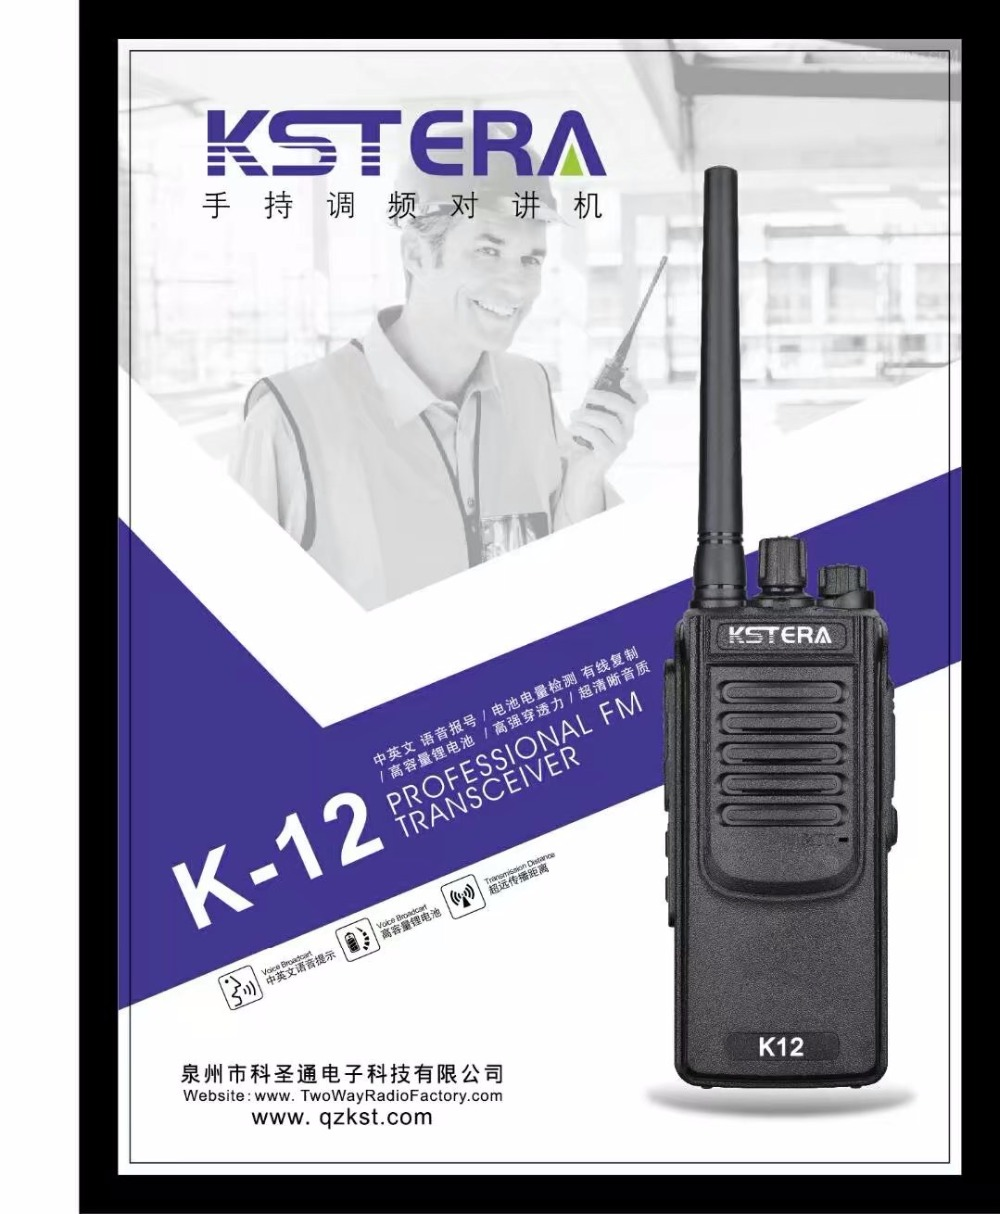 12W High Power Two Way Radio KSTERA K12 10KM Long Distance Portable Walkie Talkie Radio FM Transceiver With 4000Mah Battery